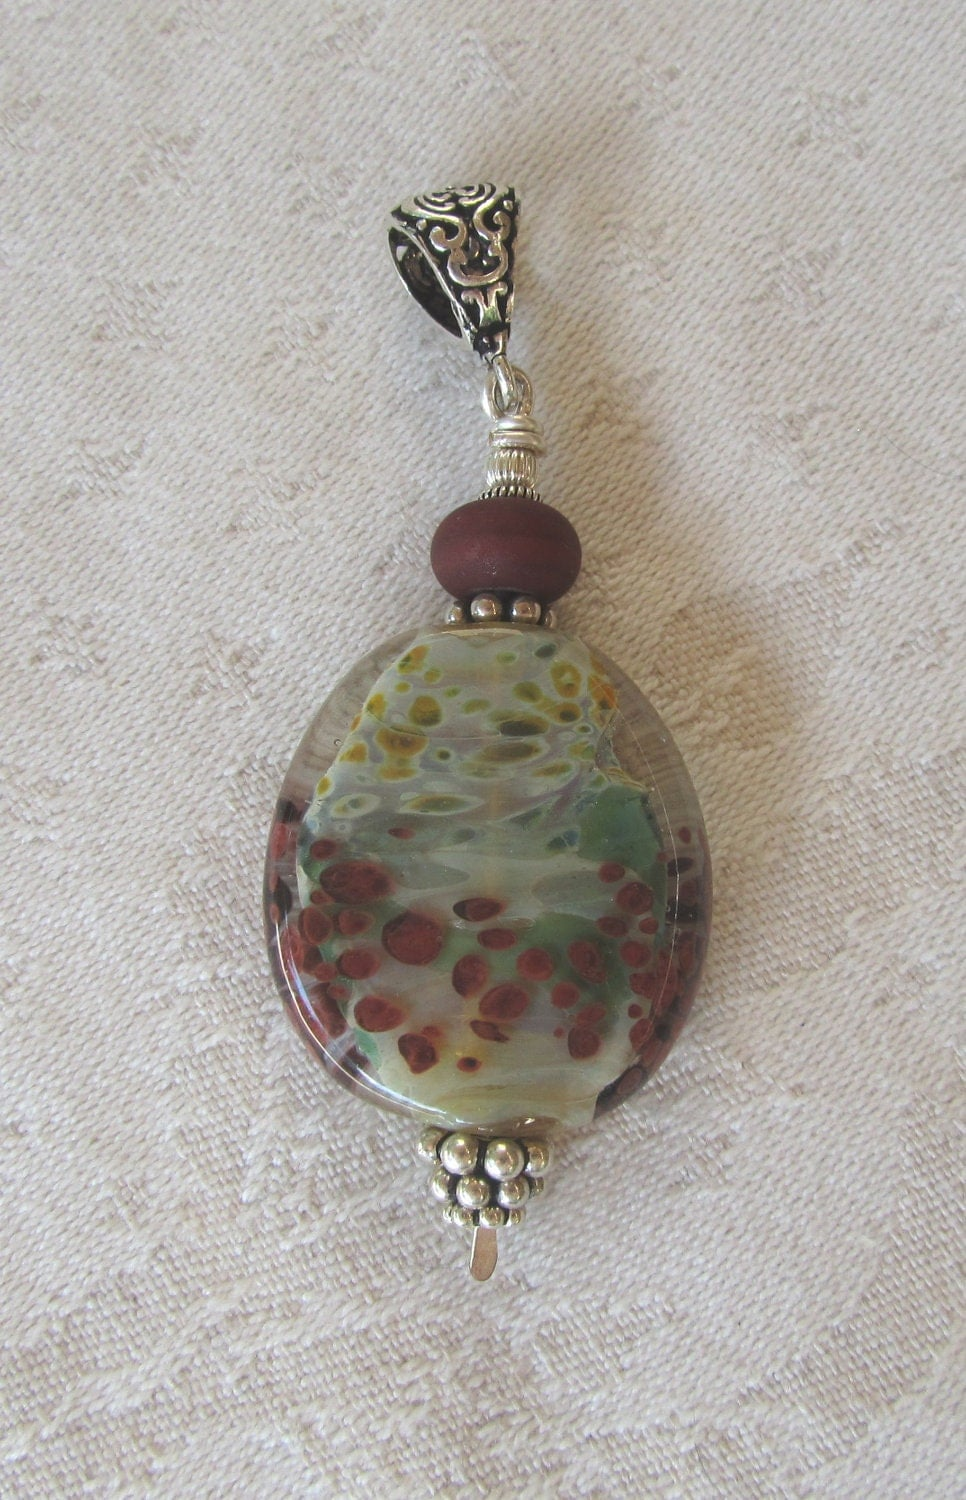 Organic Green and Brown Glass Pendant, Distinctive Artisan Bead That Mimics Nature, Lots of Sterling Accents, Large Pendant - JemsbyJoan